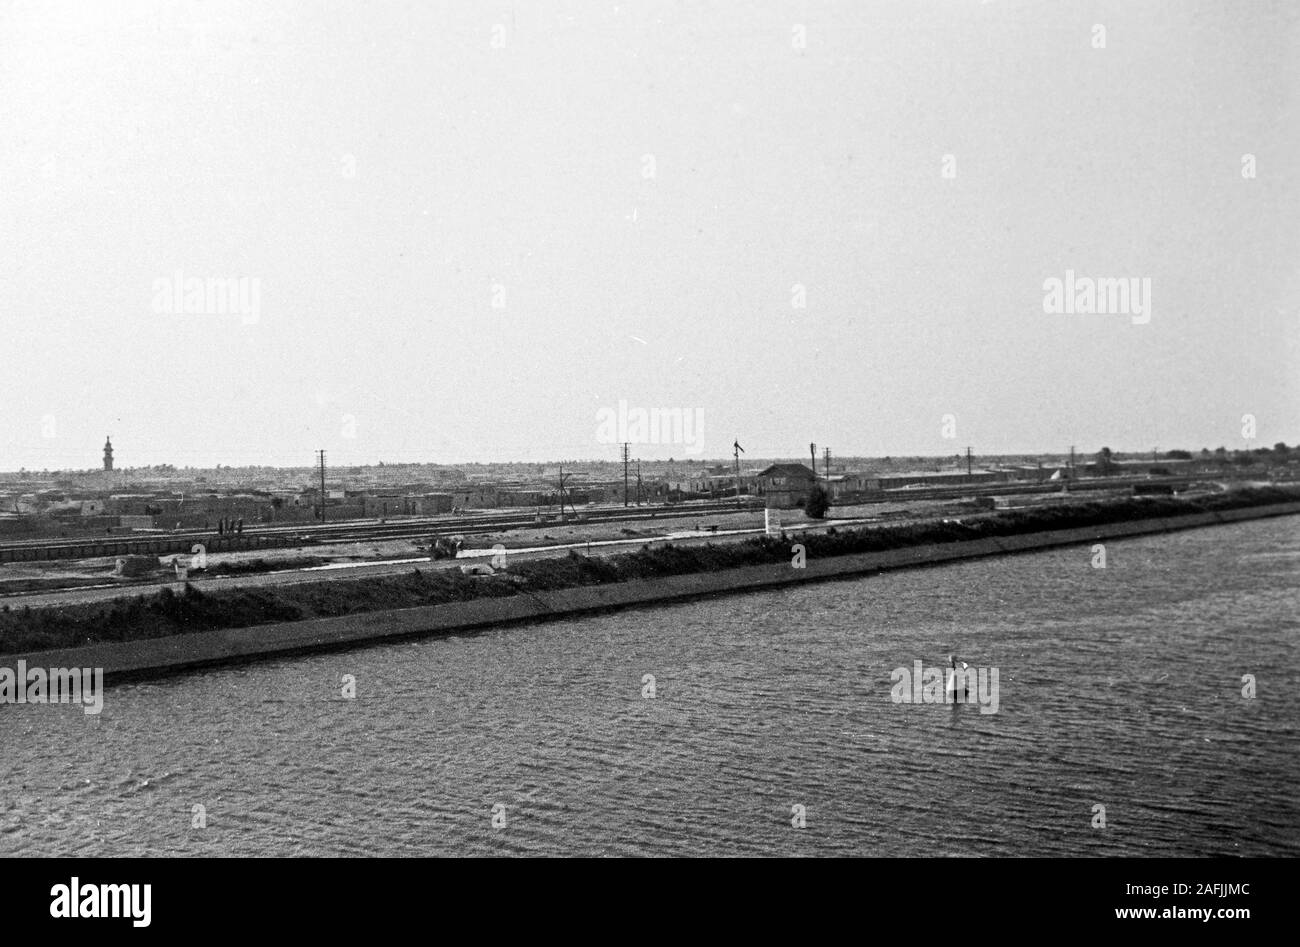 Der Suez Kanal bei Port Said, 1955. Suez Canal near Port Said, 1955. Stock Photo